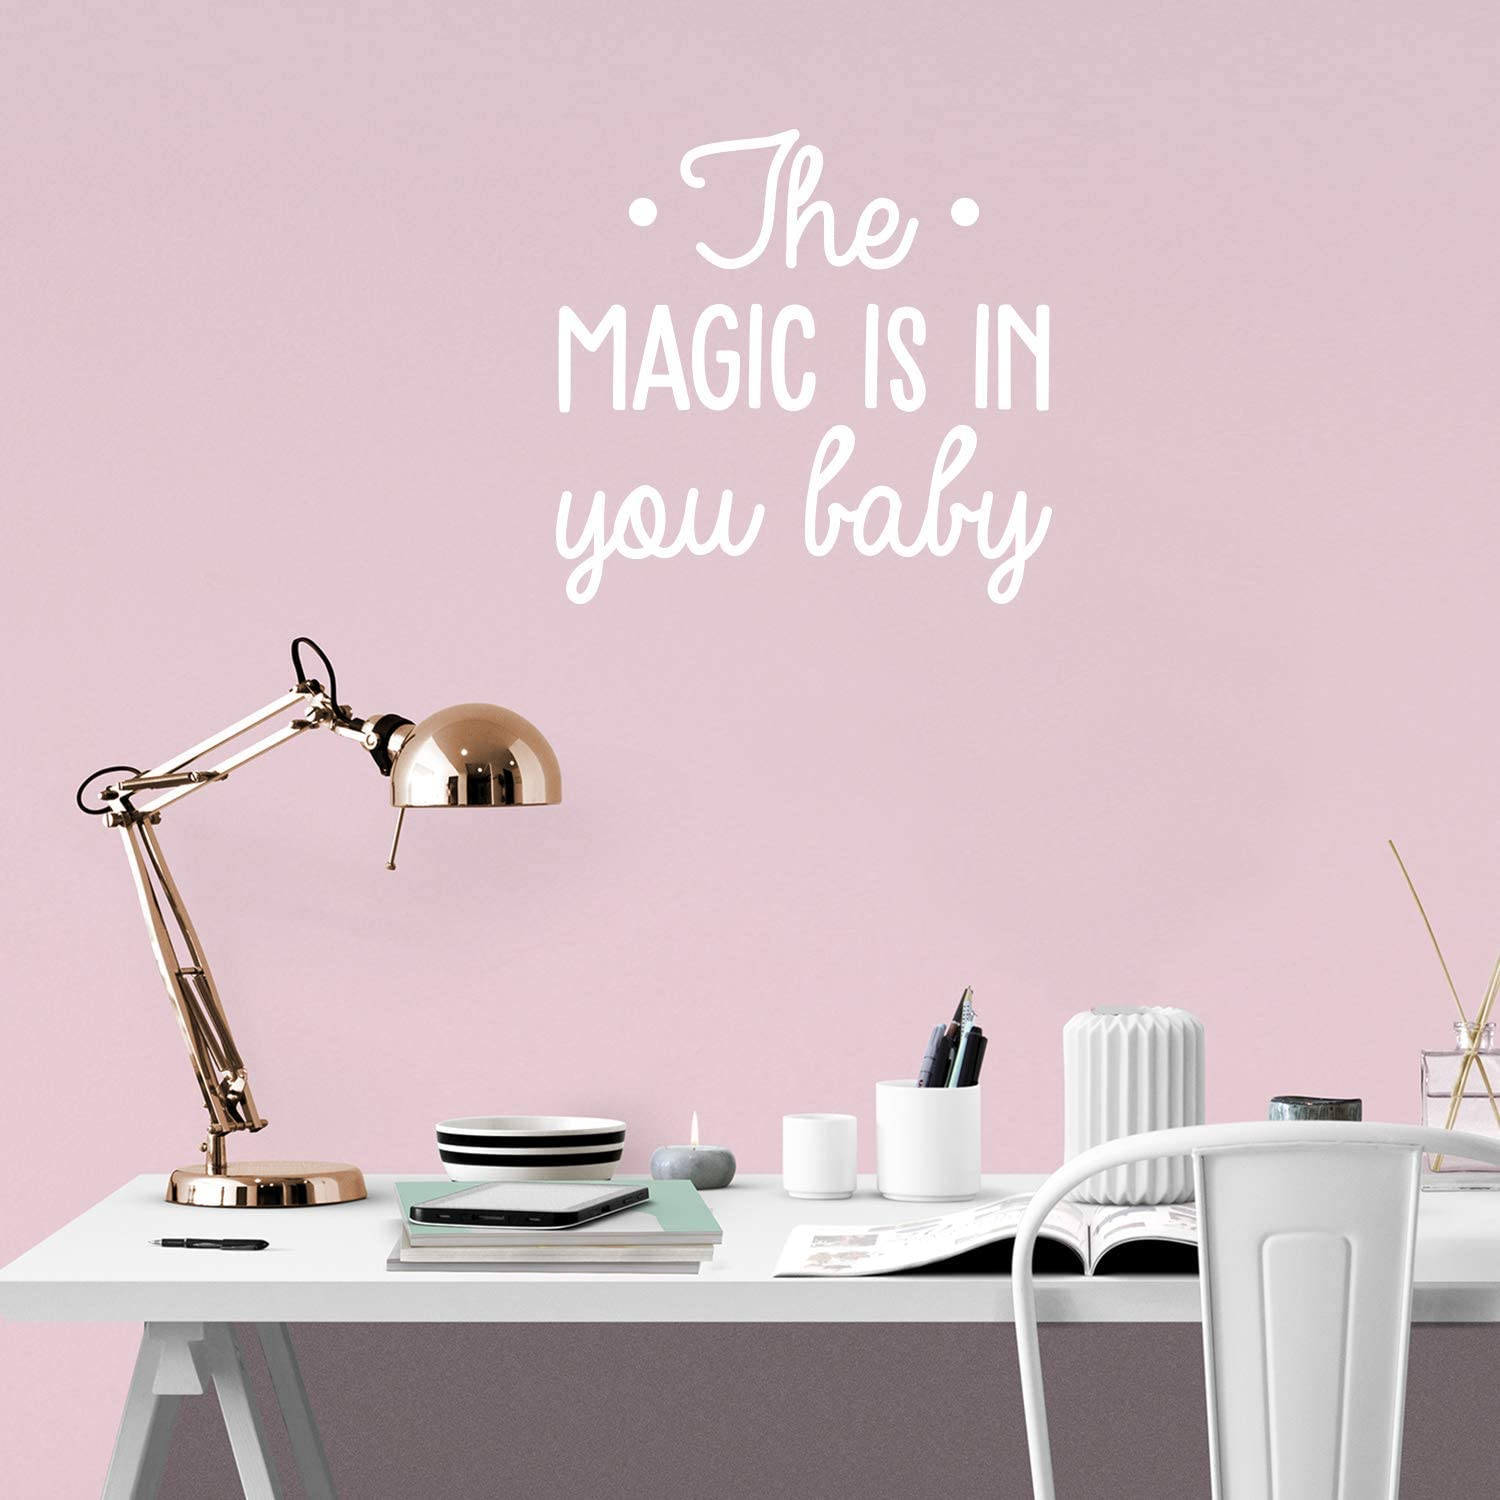 Vinyl Wall Art Decal - The Magic is in You Baby - 22